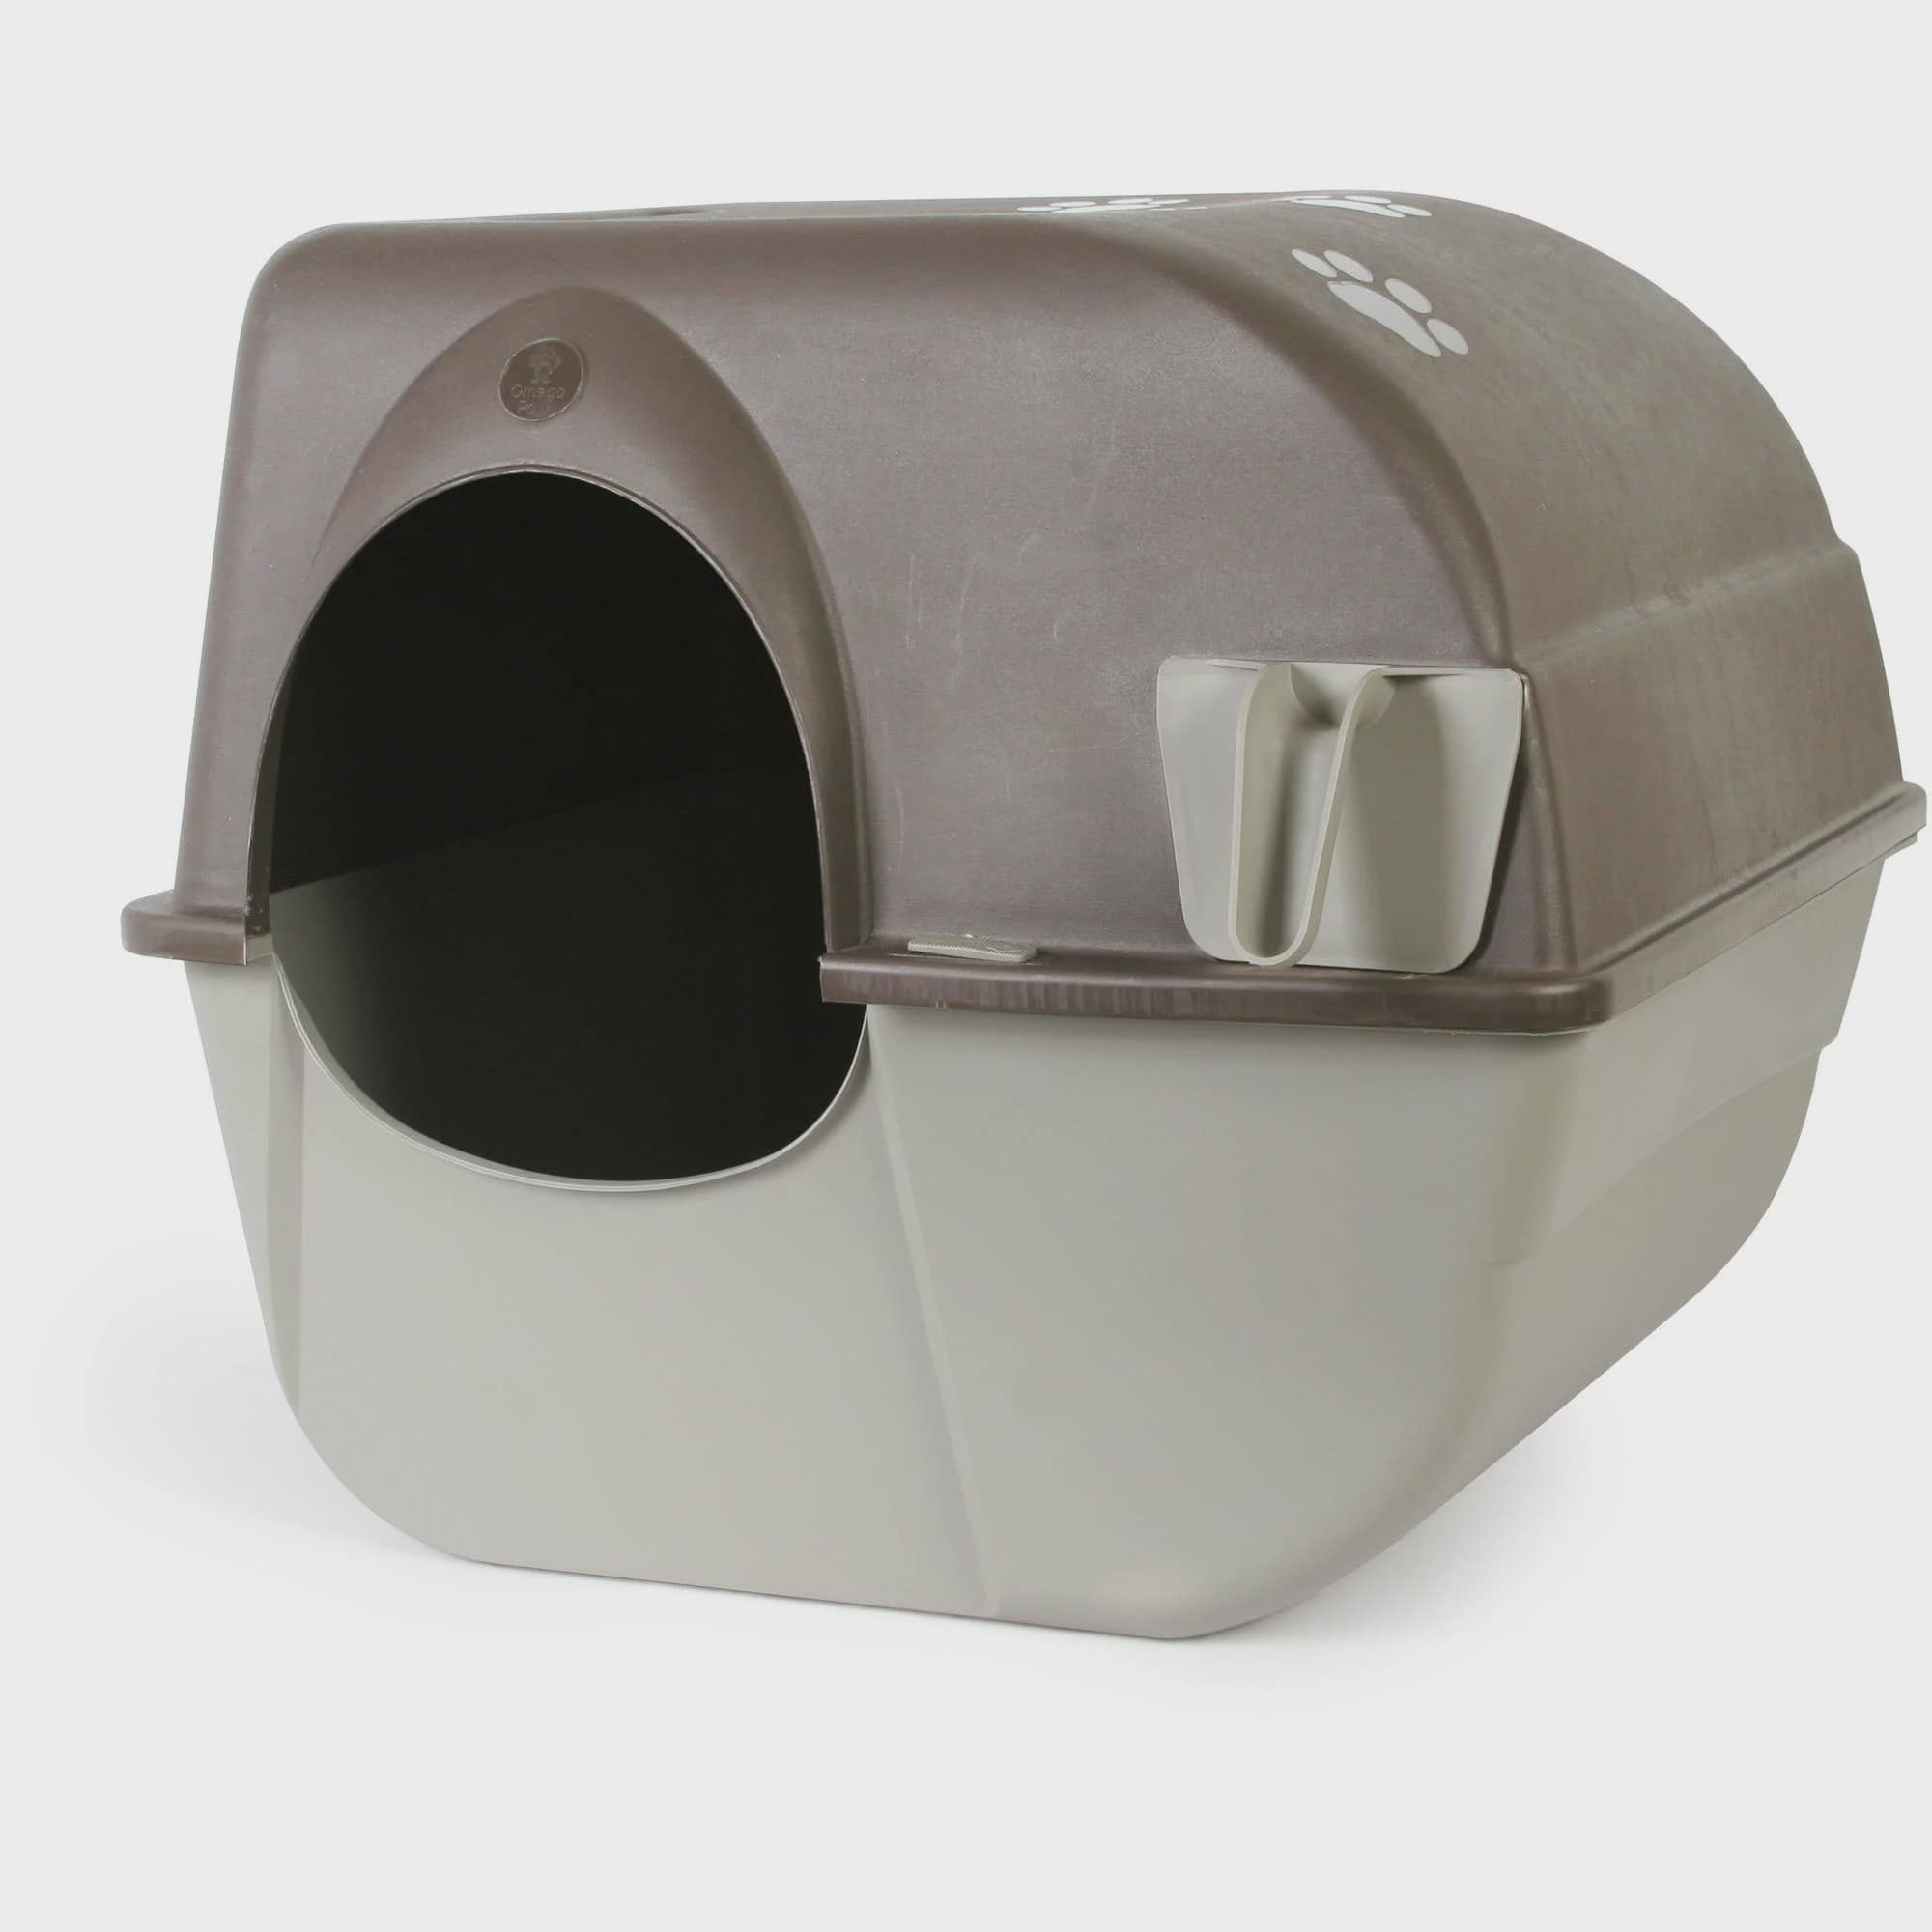 Self Cleaning Cat Litter Boxes Walmartcom